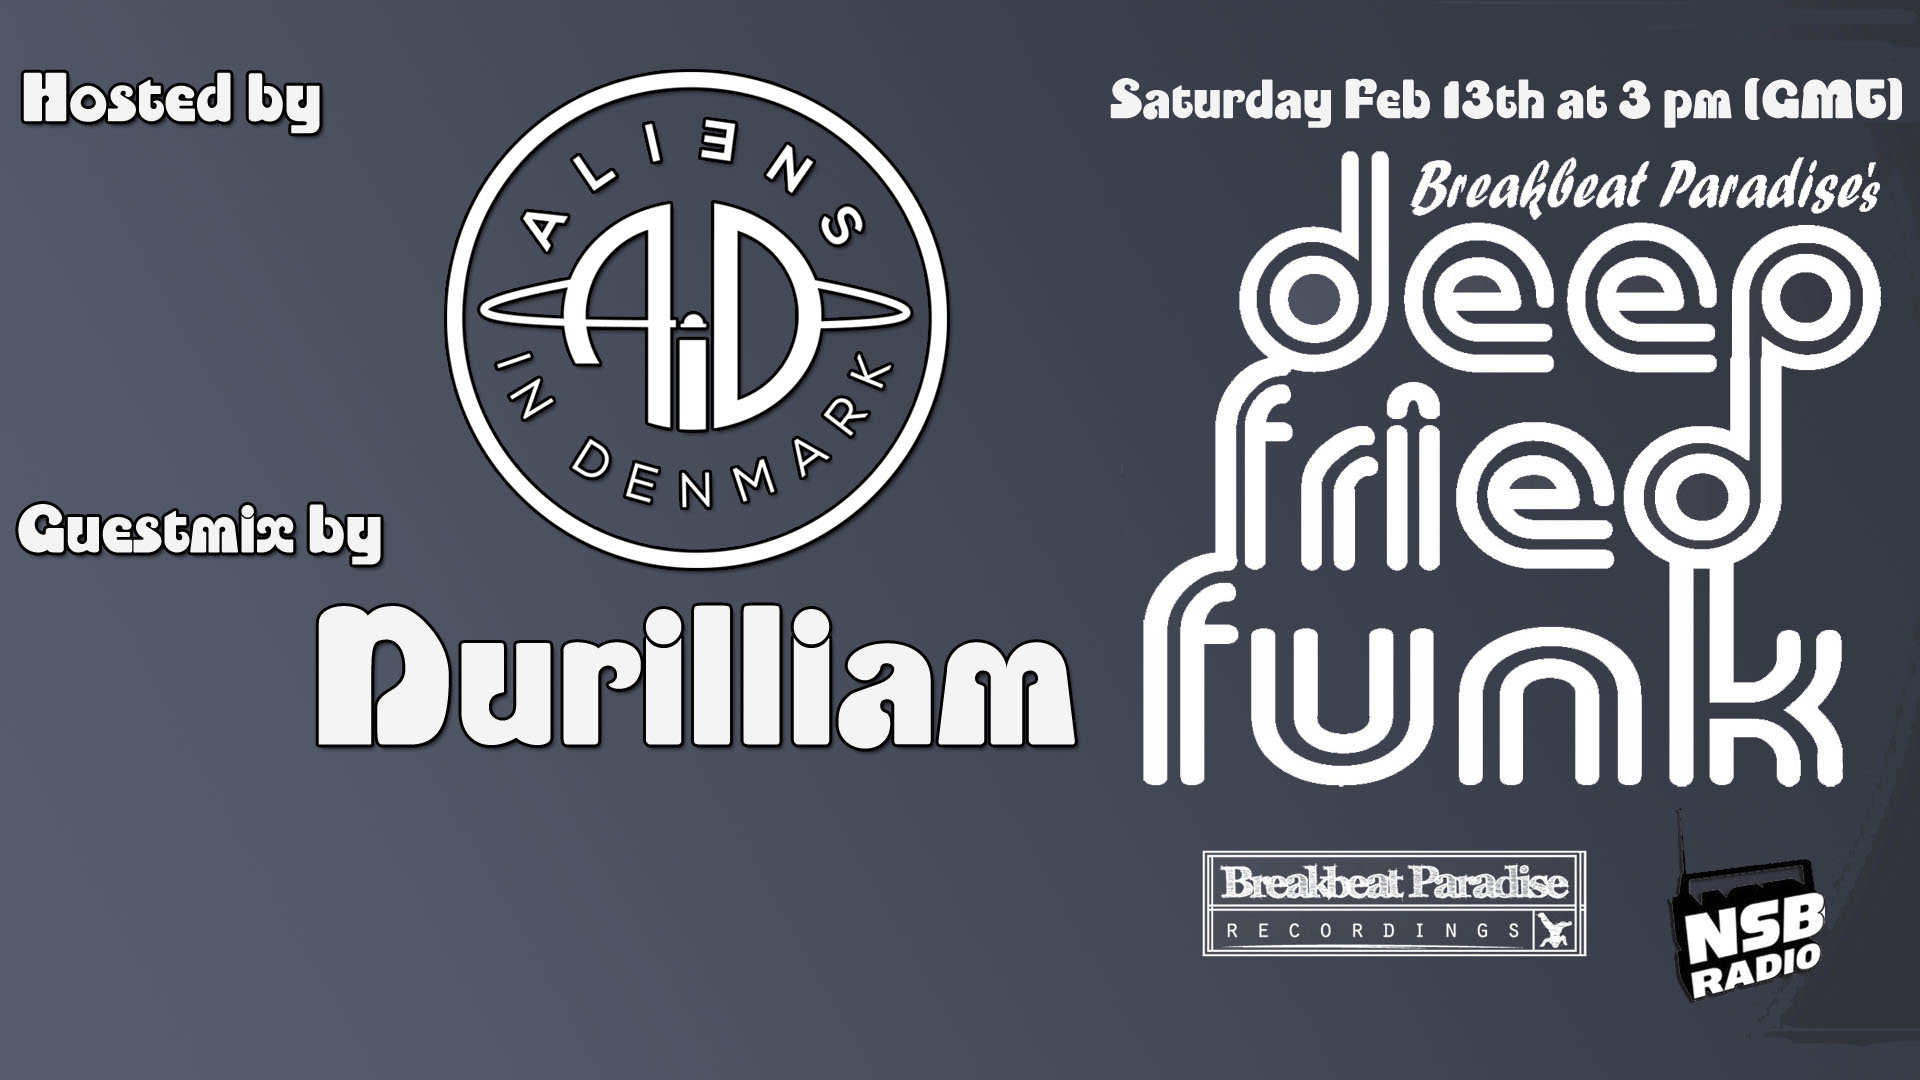 Deep Fried Funk #3 – Hosted by Aliens In Denmark – Guestmix by Durillium